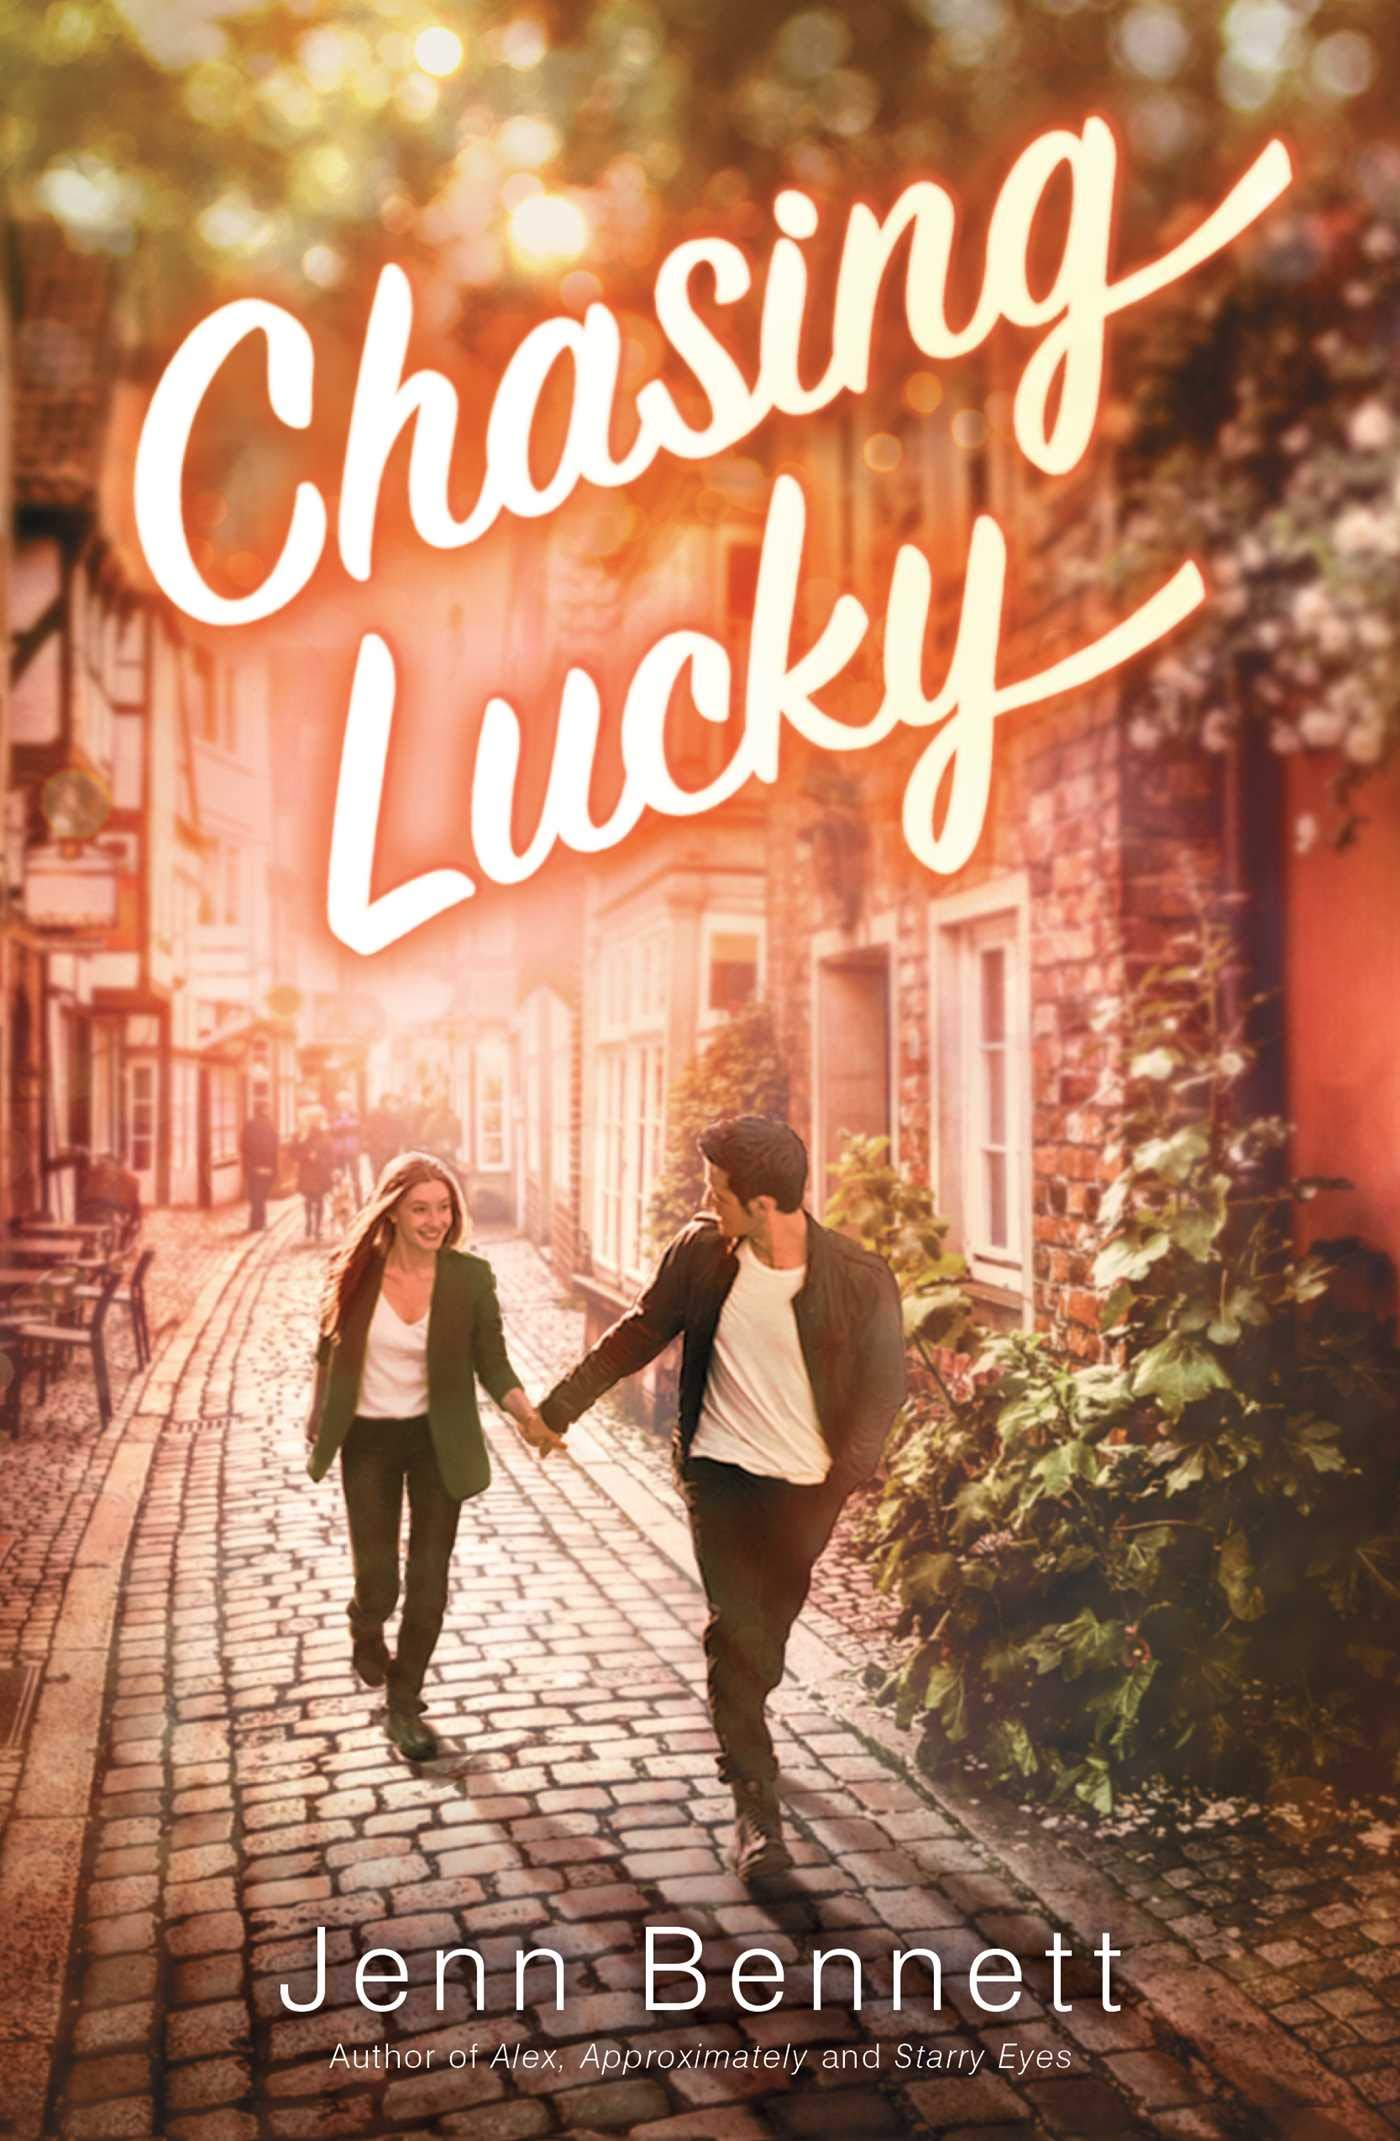 Book Review: Chasing Lucky by Jenn Bennett